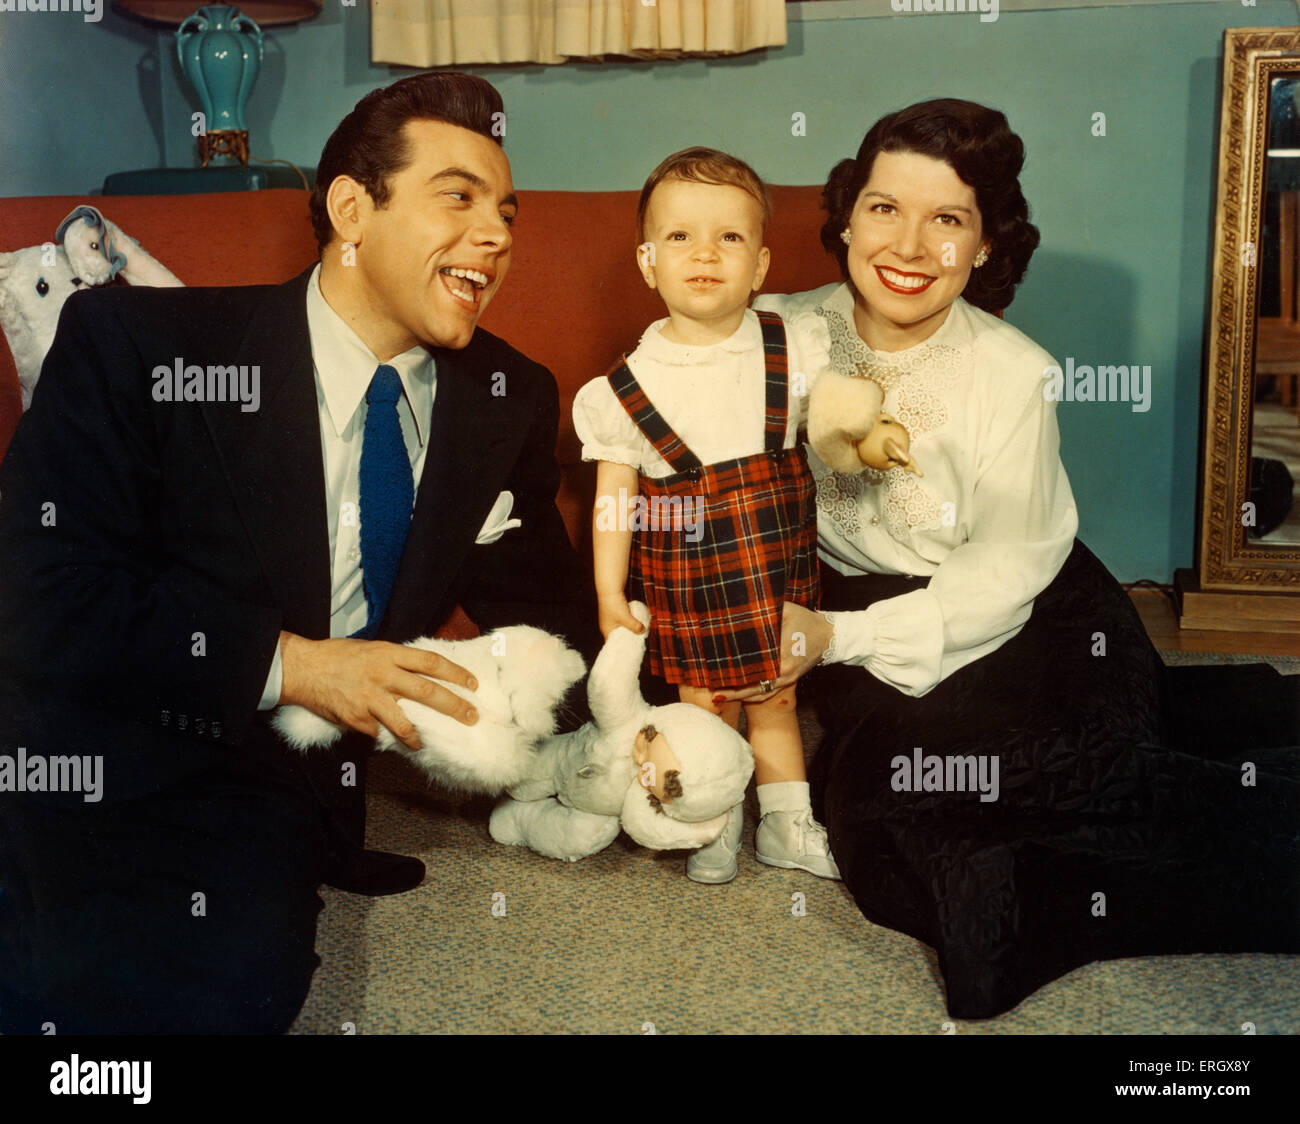 Mario Lanza with family: Publicity picture. ML: American tenor and Hollywood movie star, 31 January 1921 – 7 October - Stock Image